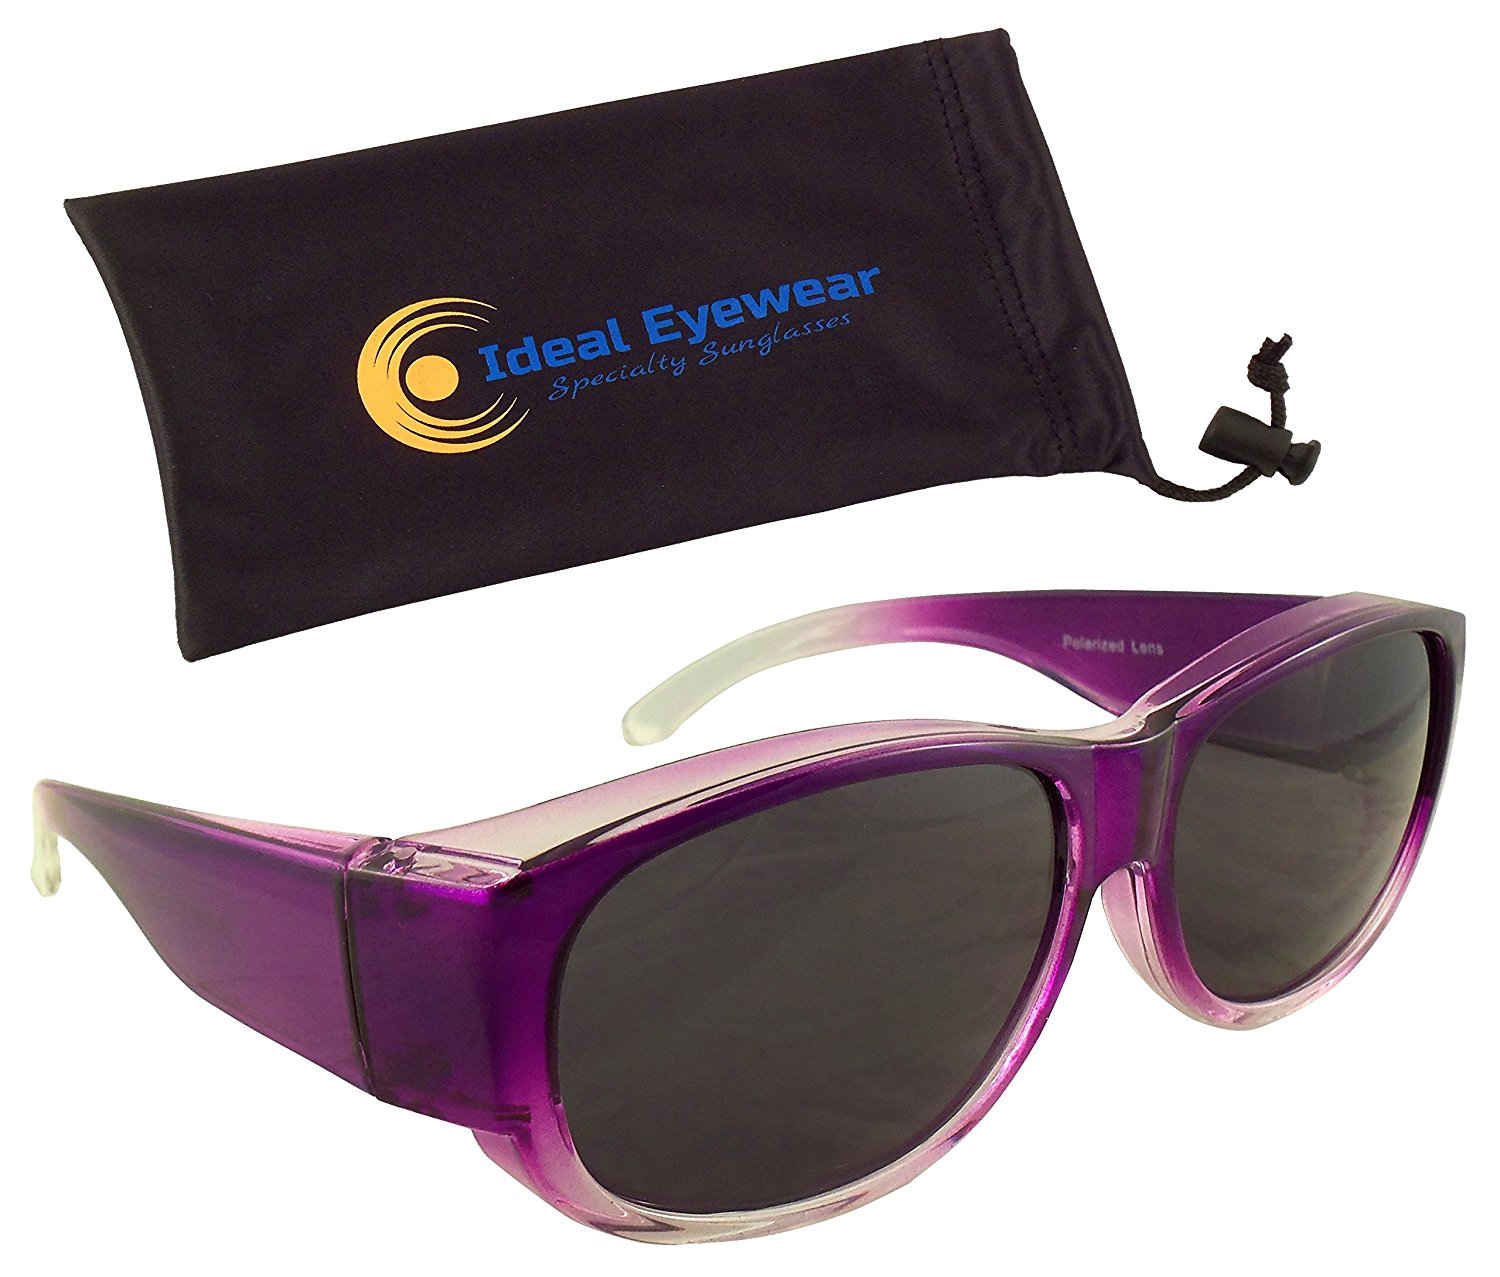 bde10191e9a Get Quotations · Womens Ombre Fit Over Sunglasses by Ideal Eyewear - Wear  Over Prescription Glasses - Over Eyeglasses